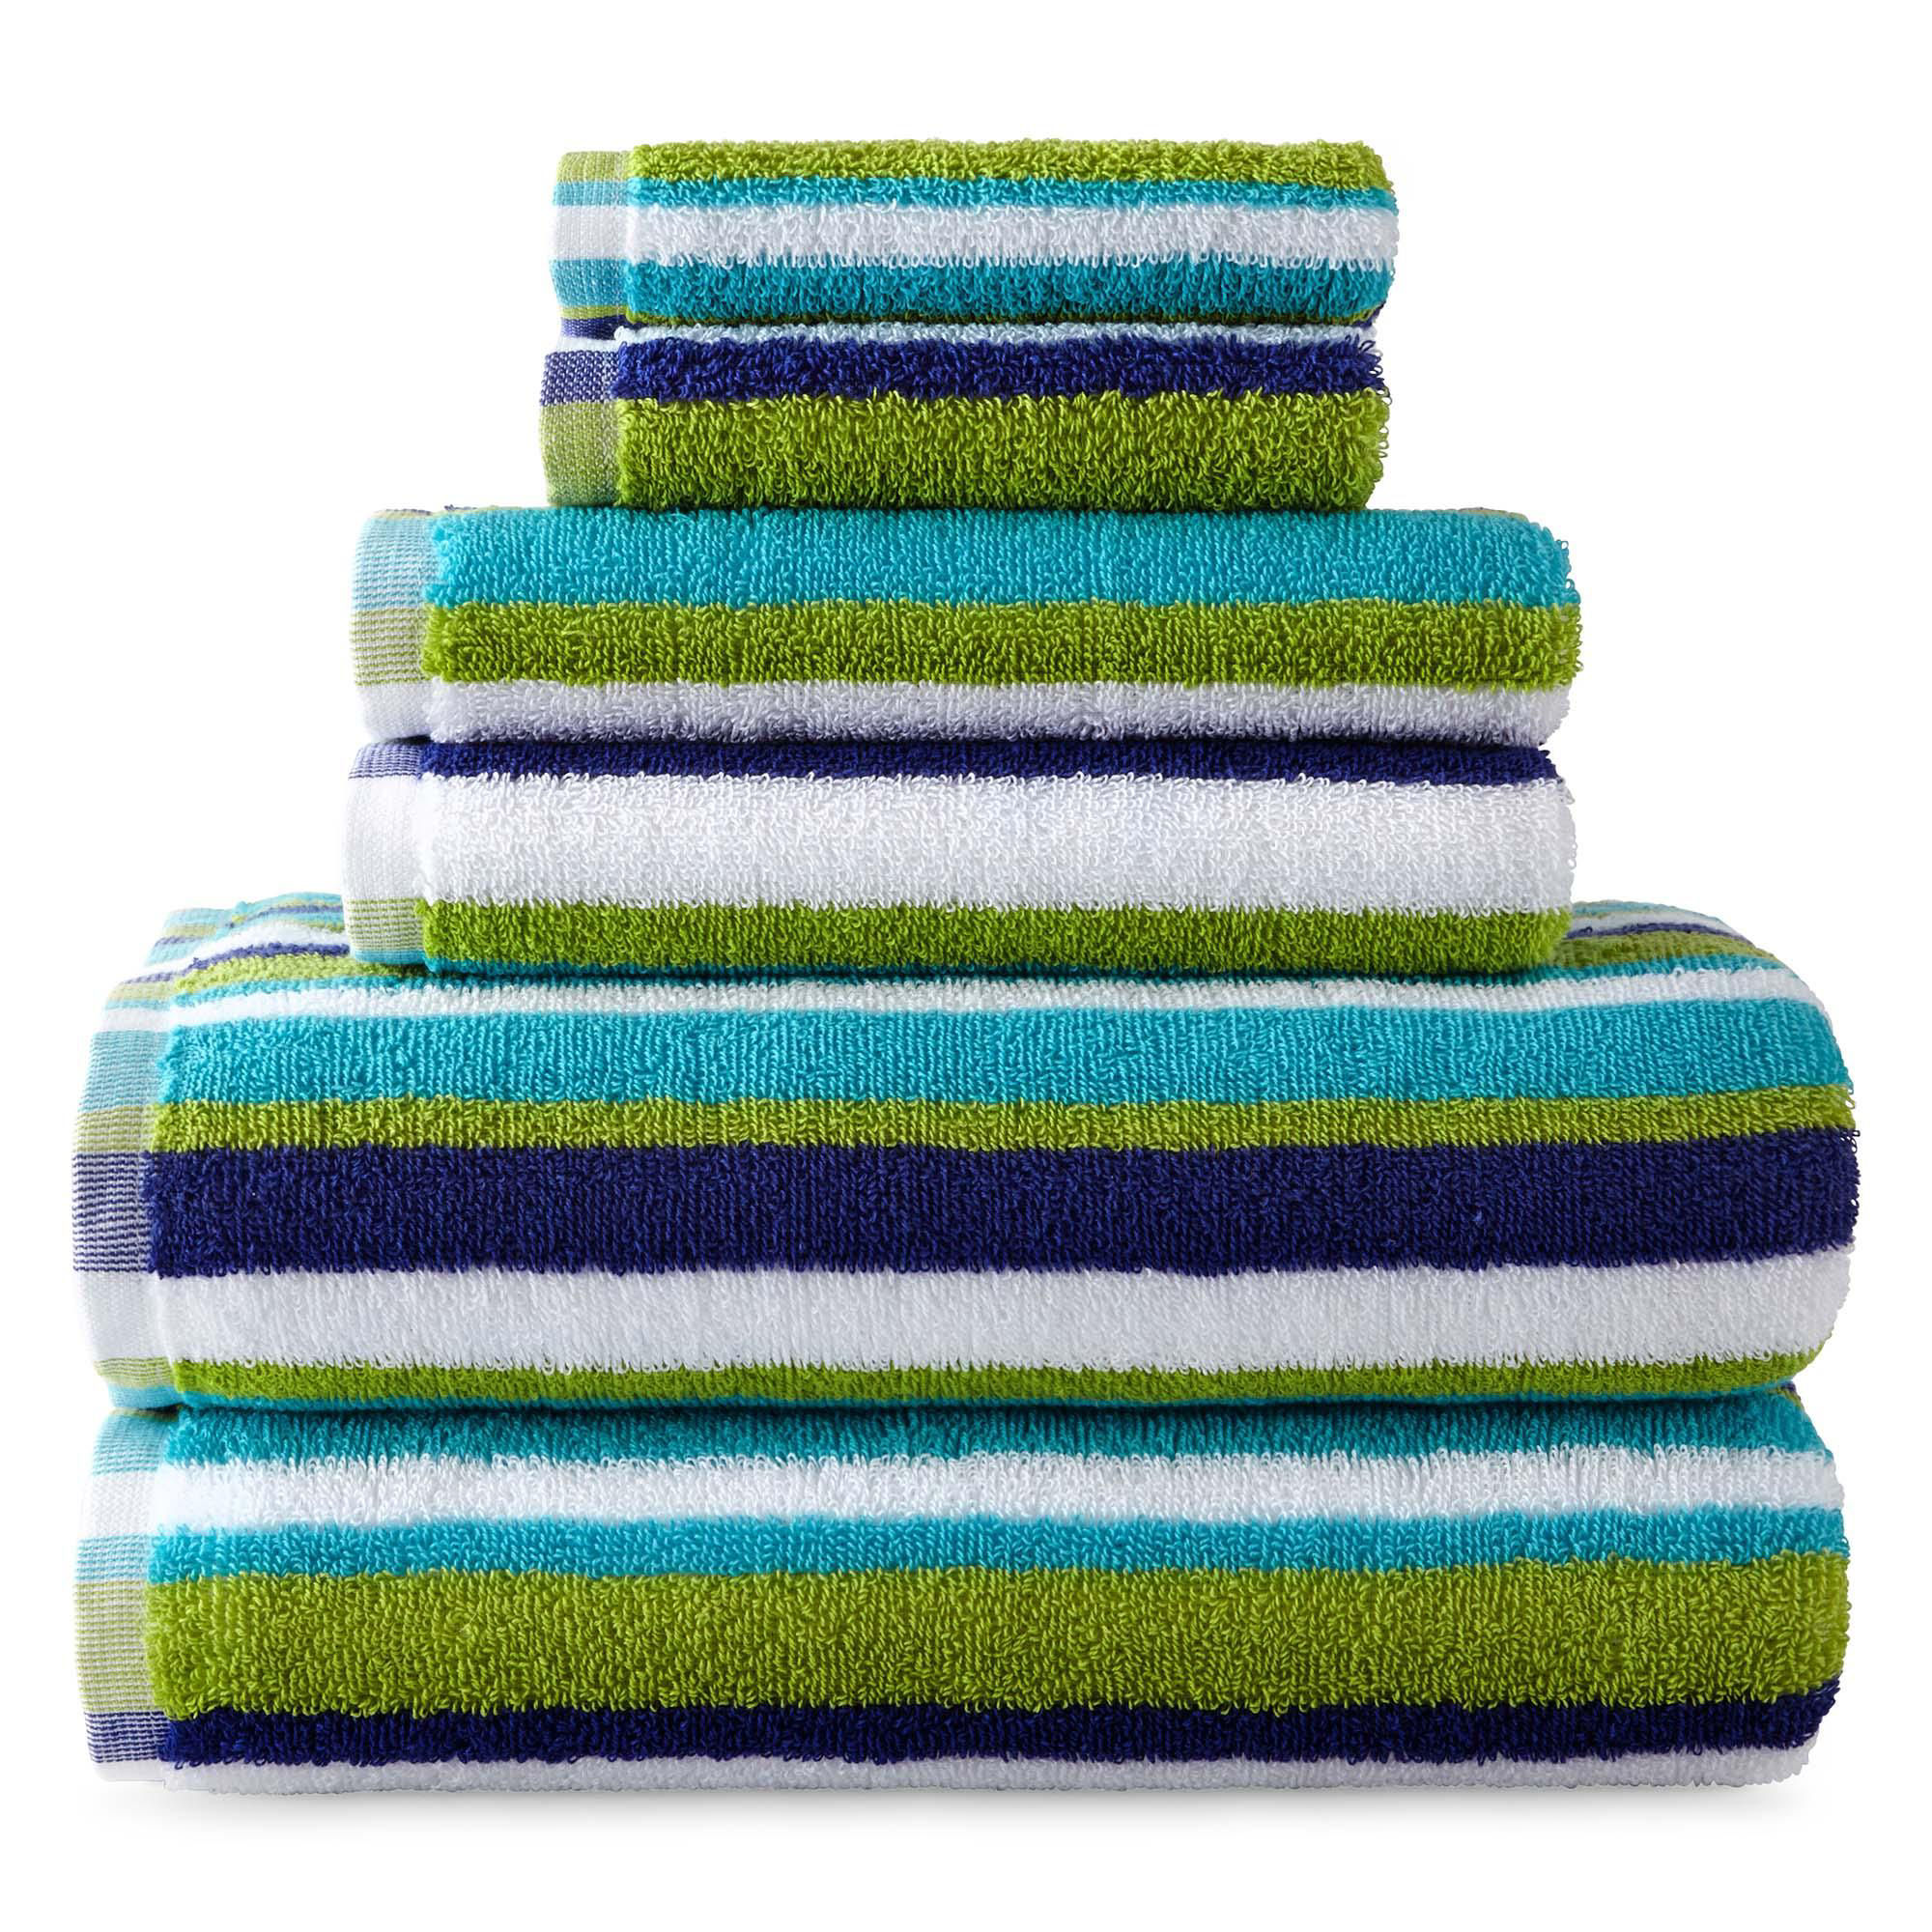 Jcp Home Collection Home Striped Bath Towels Green Blue